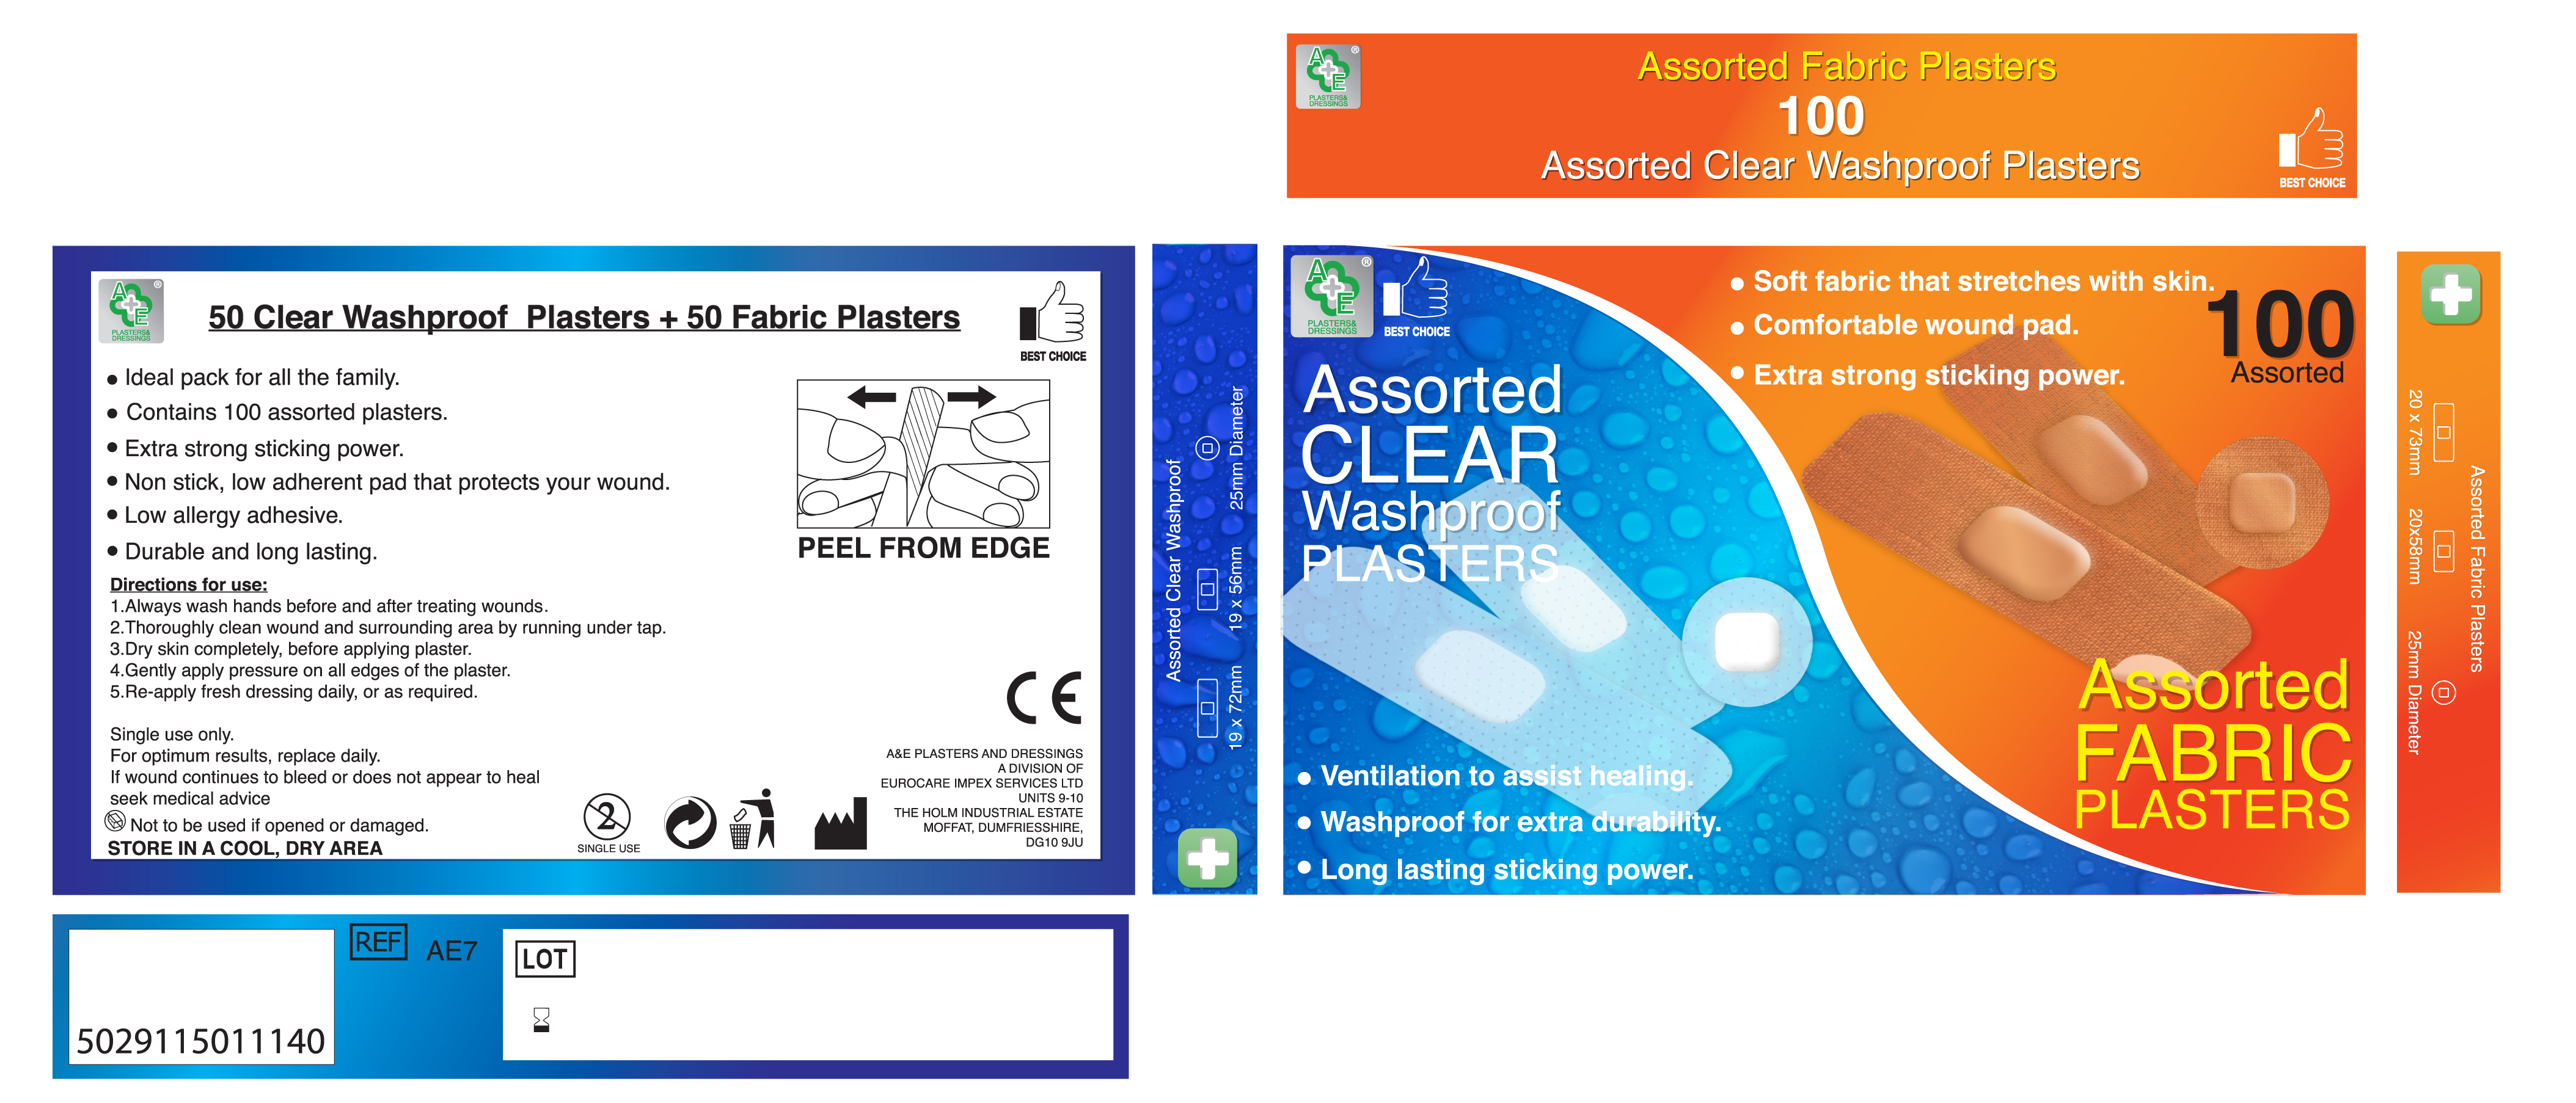 AE7 Value 100 Assorted Plasters - Fabric and Clear